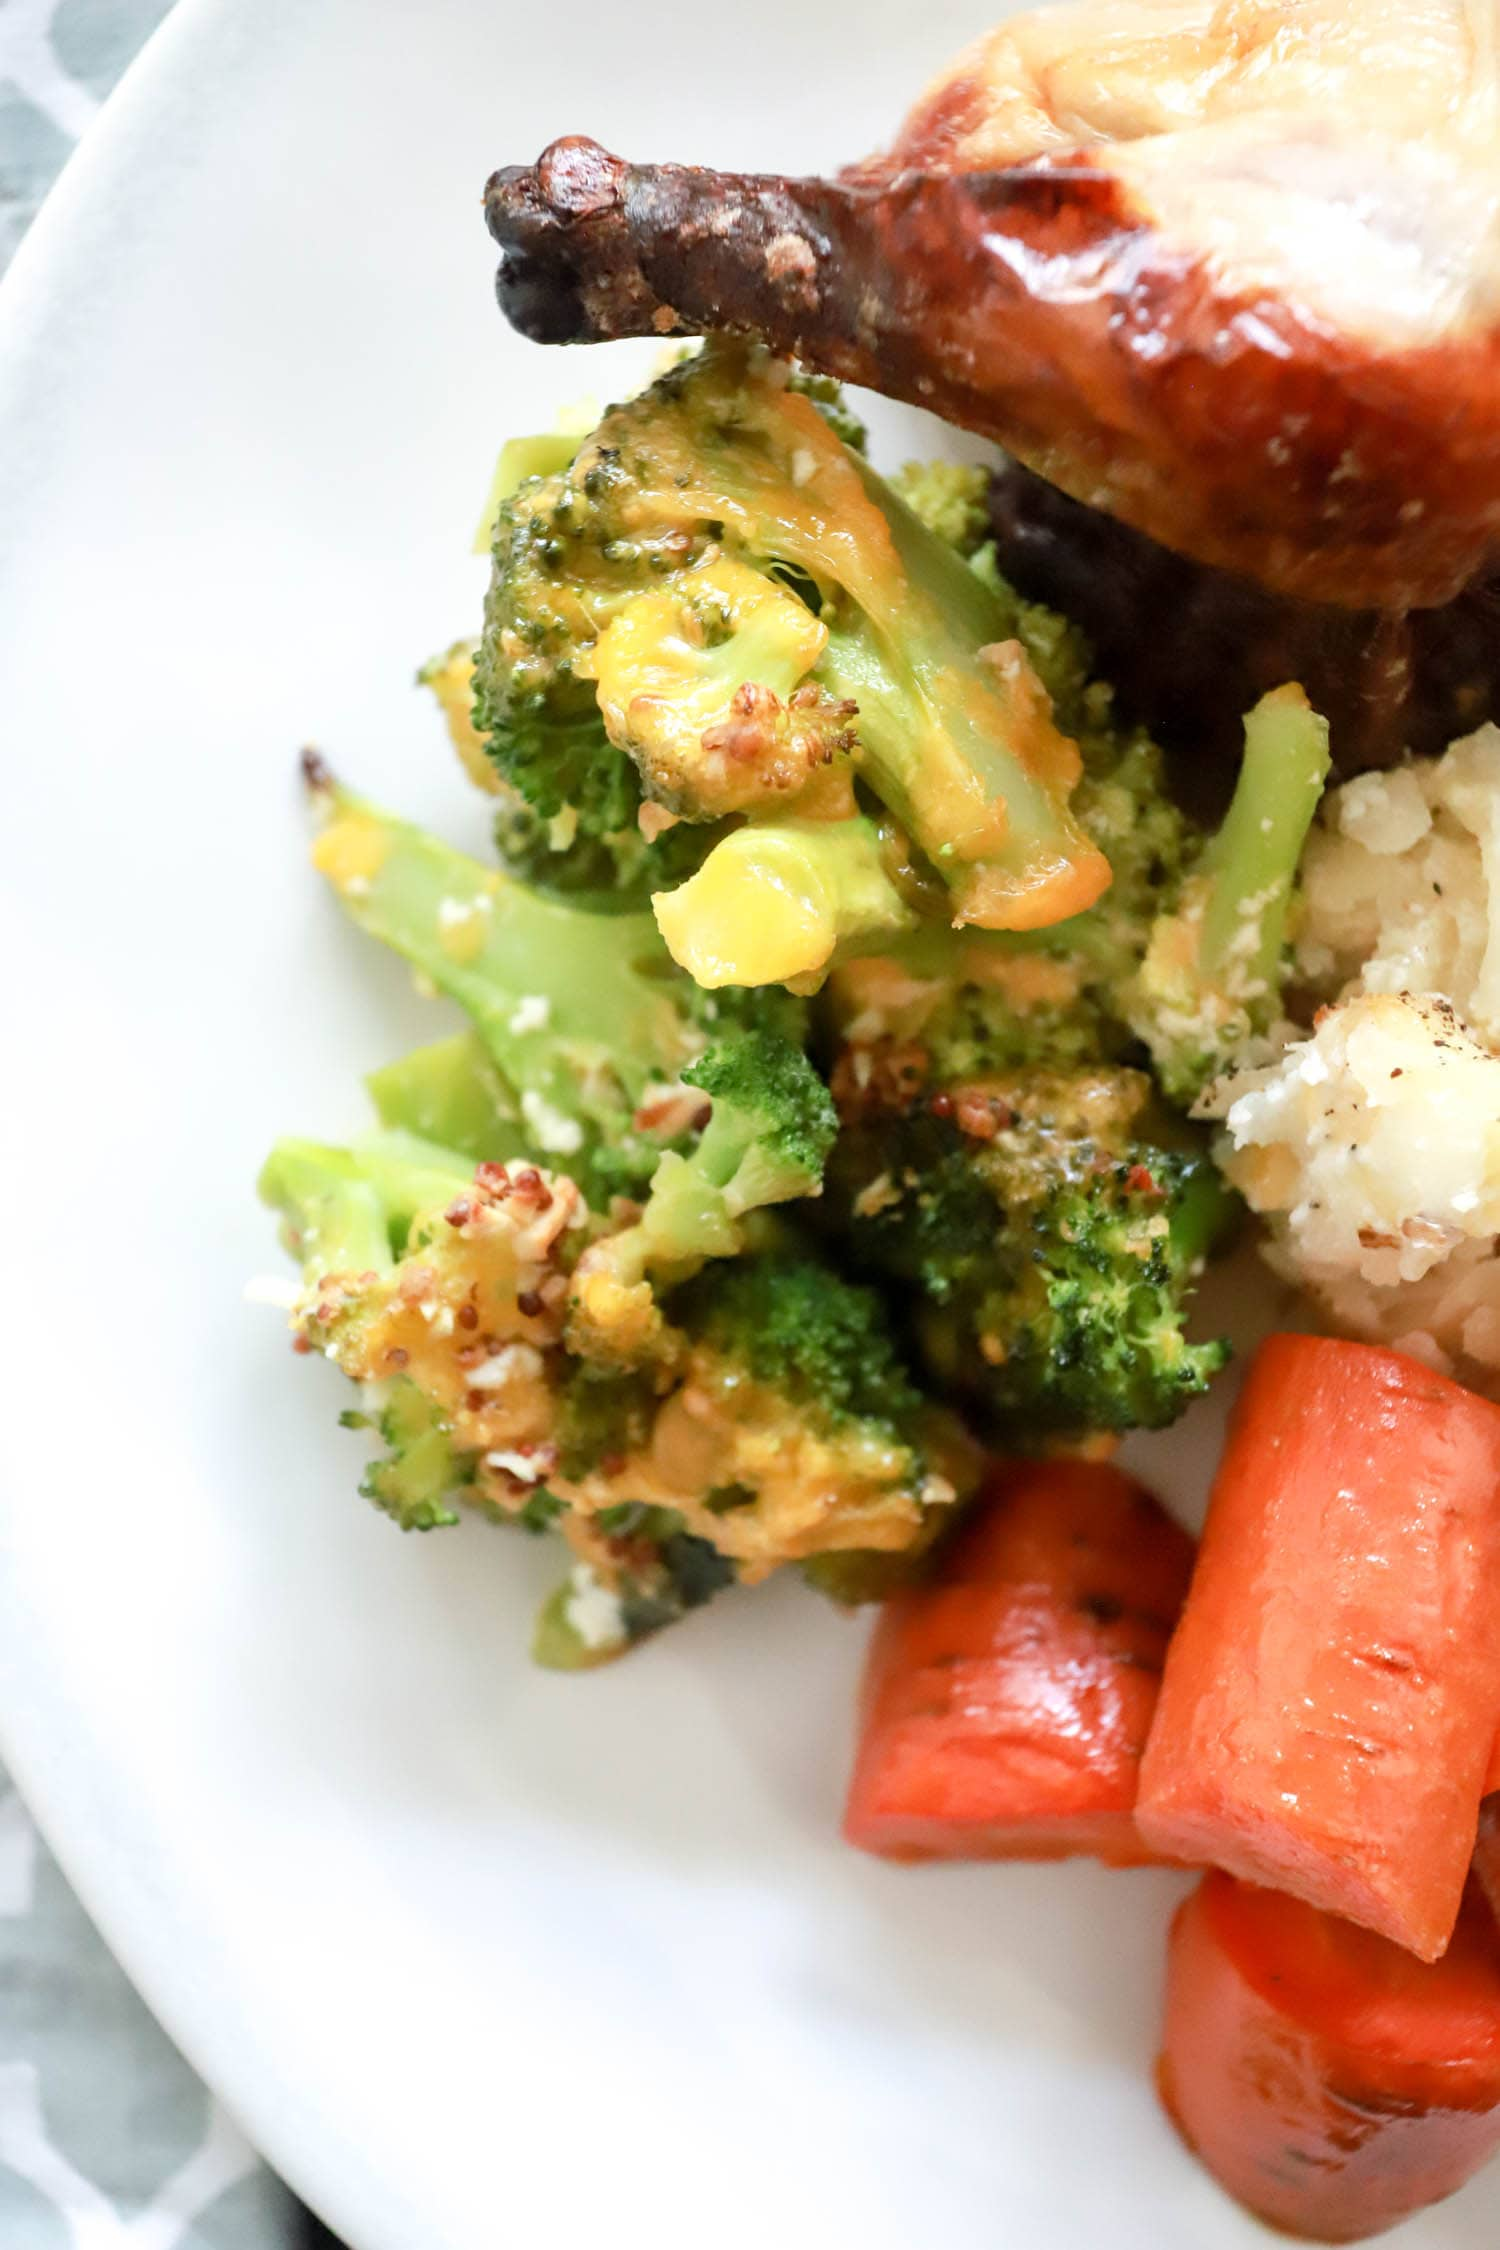 baked broccoli recipe for thanksgiving